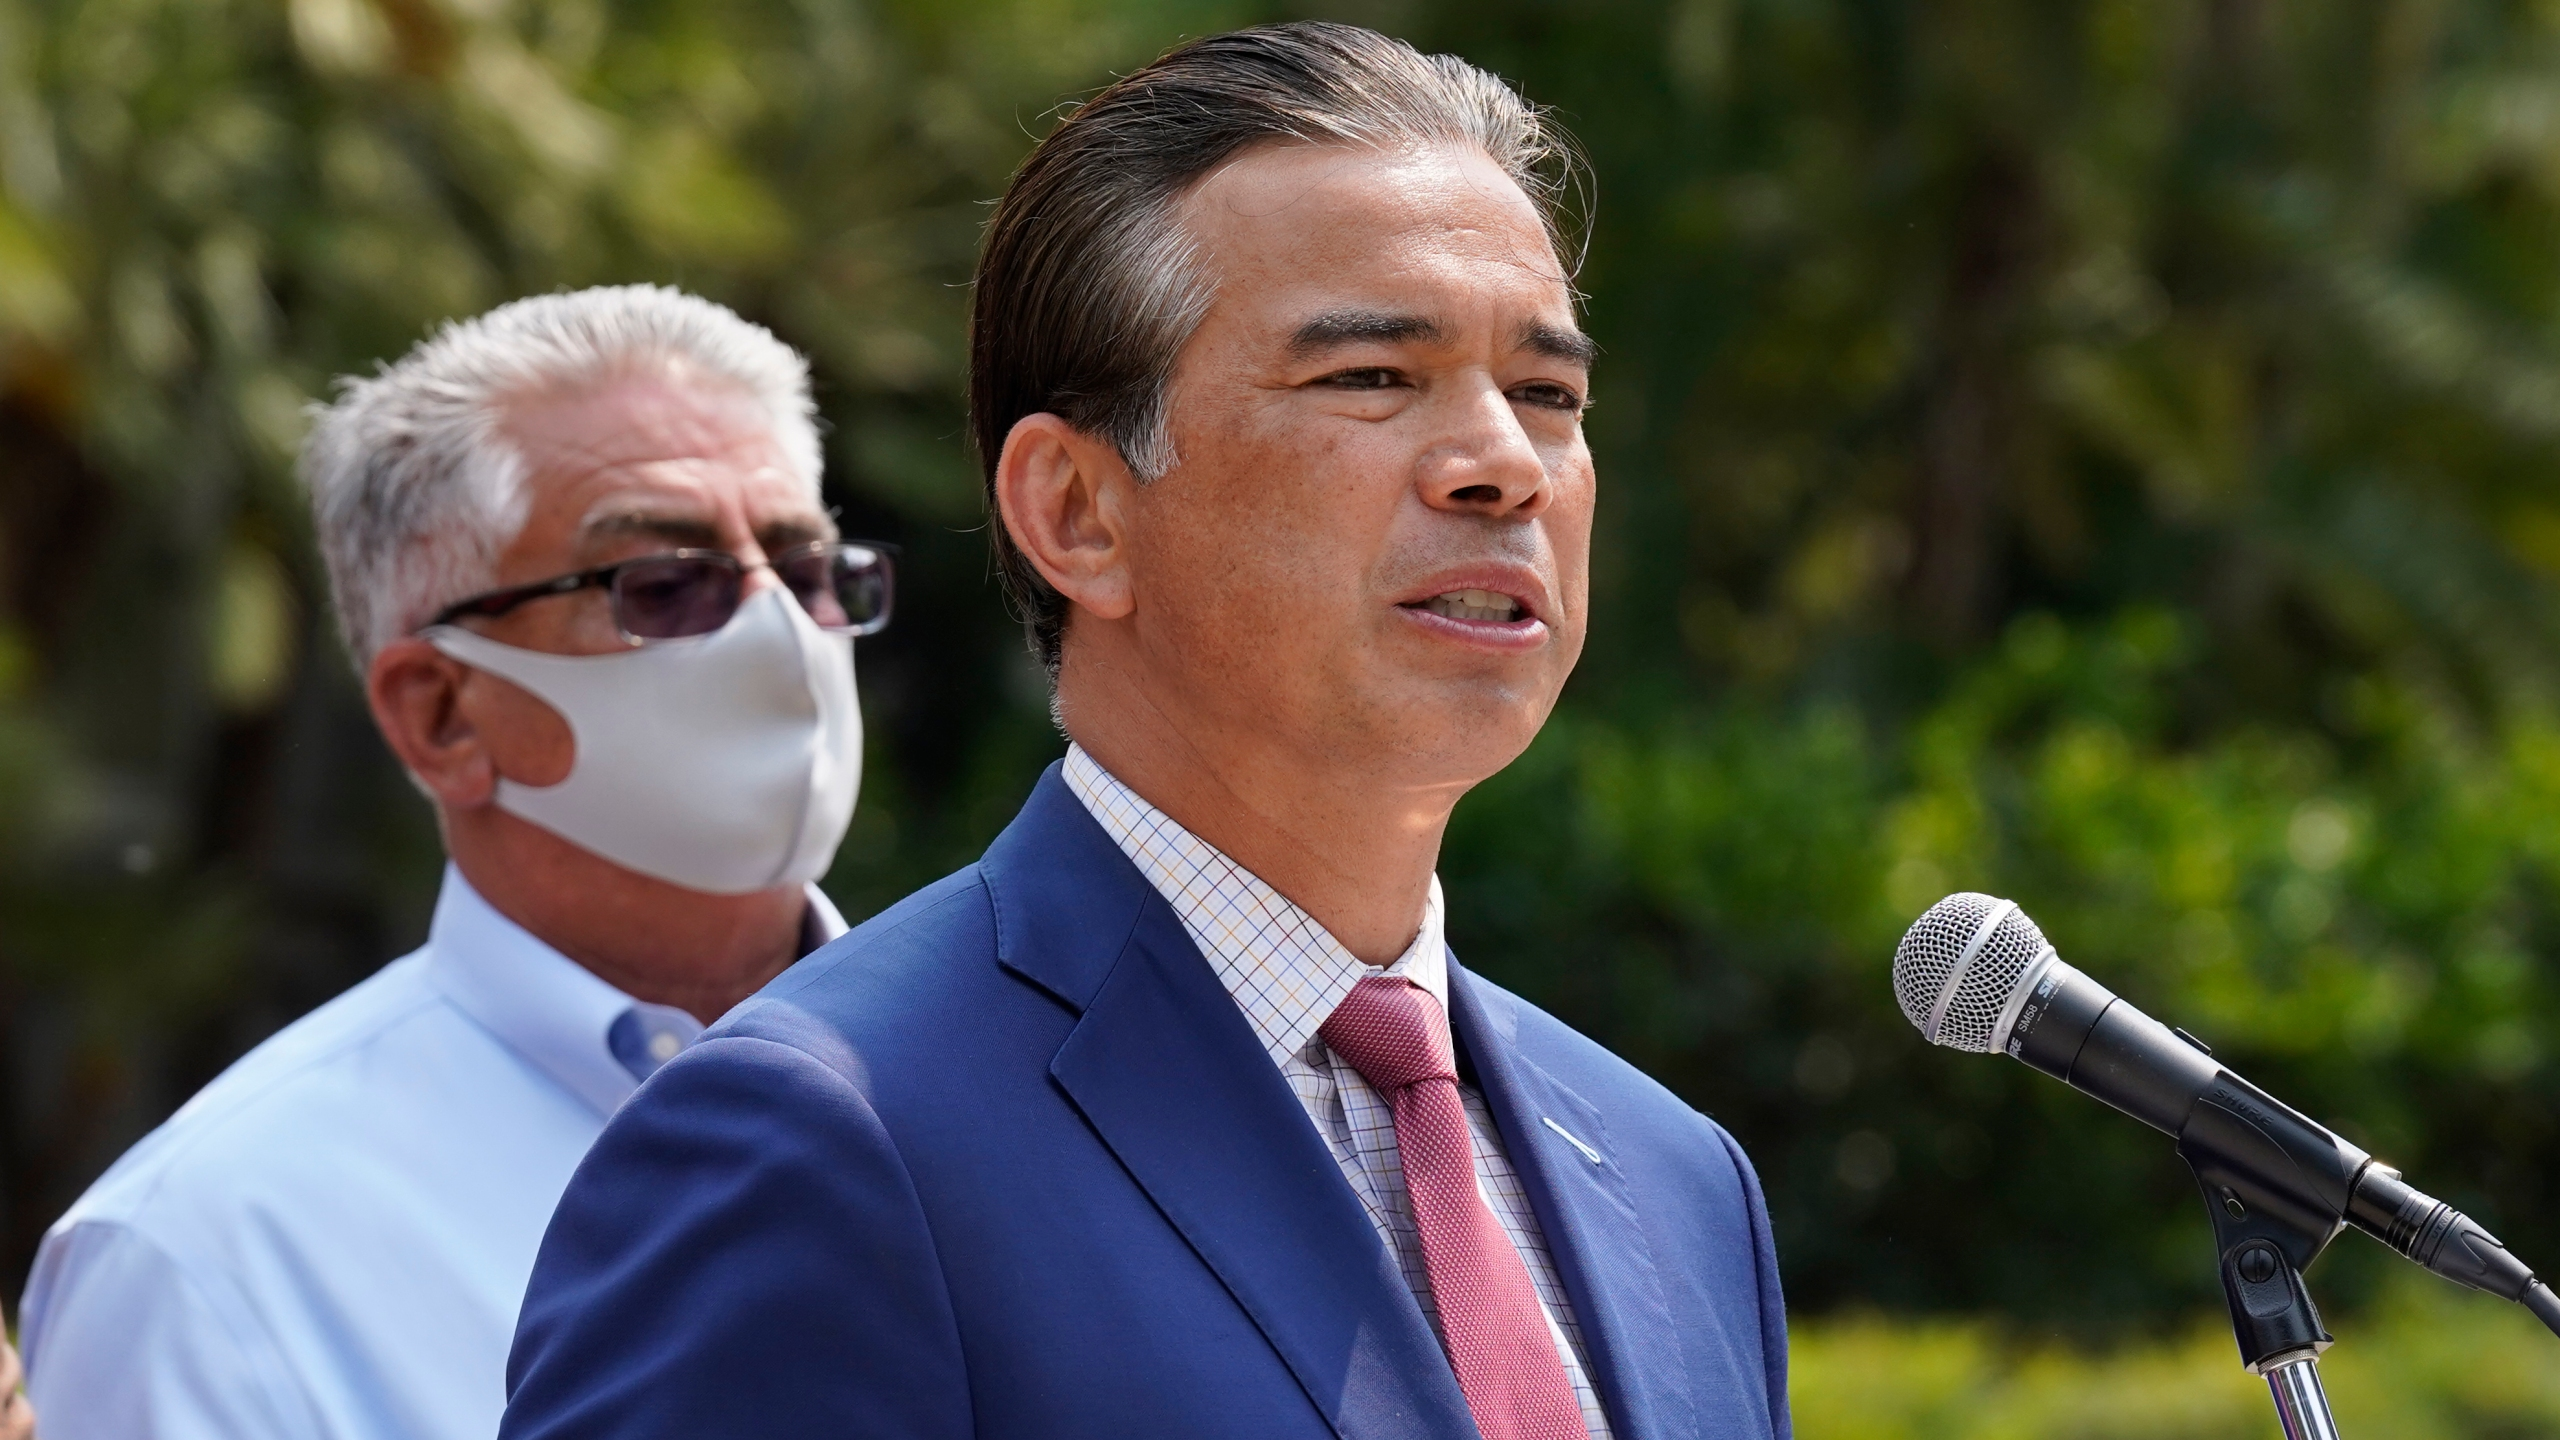 California Attorney General Rob Bonta speaks at a news conference in Sacramento, Calif., on Aug. 17, 2021. (AP Photo/Rich Pedroncelli)